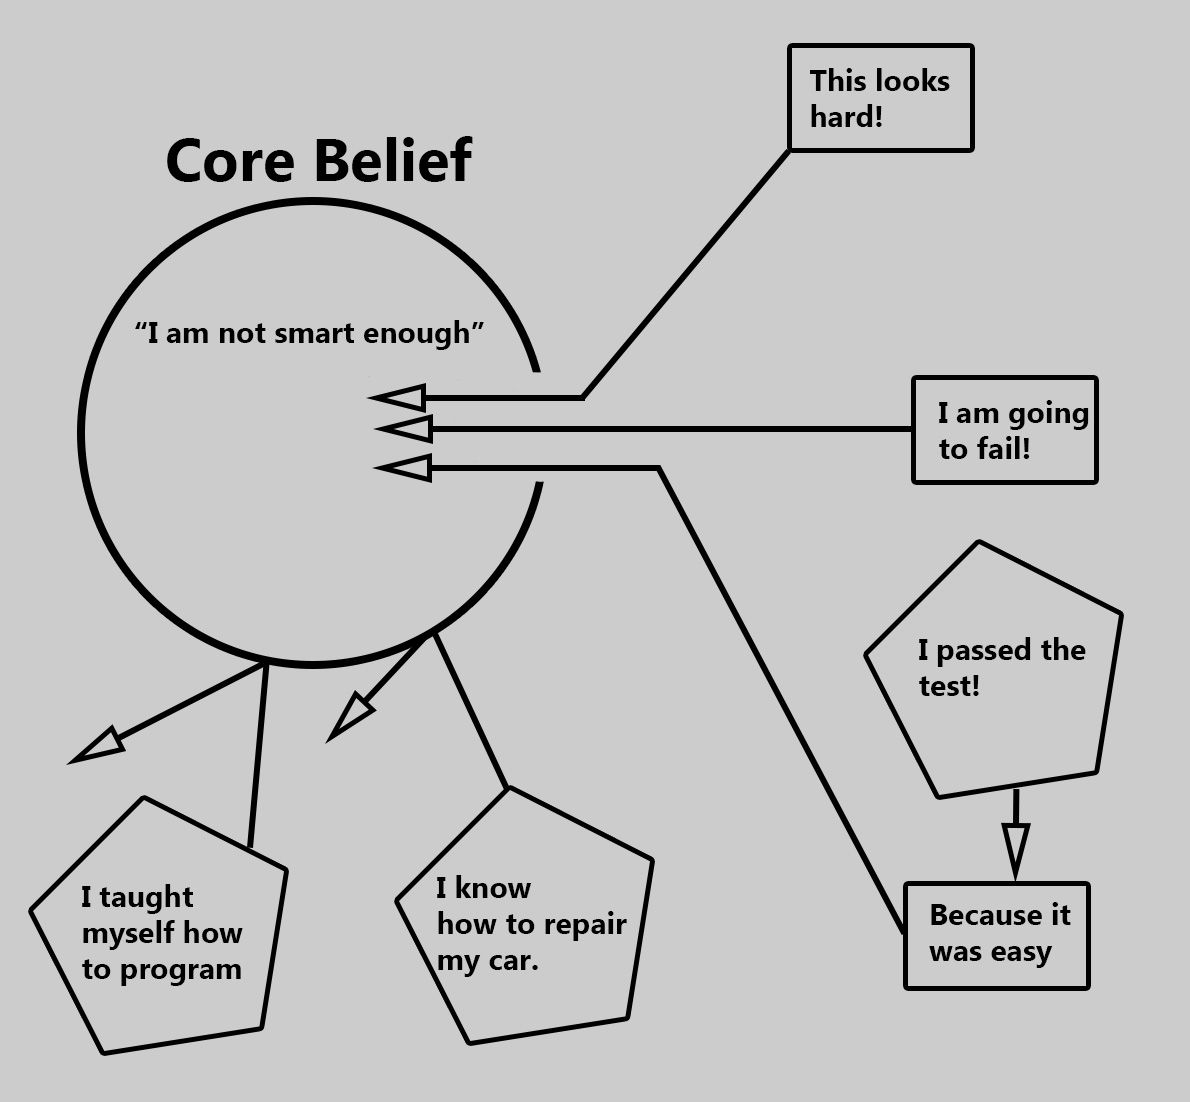 worksheet Core Beliefs Worksheet belief diagram jpg retcbt pinterest cbt and jpg